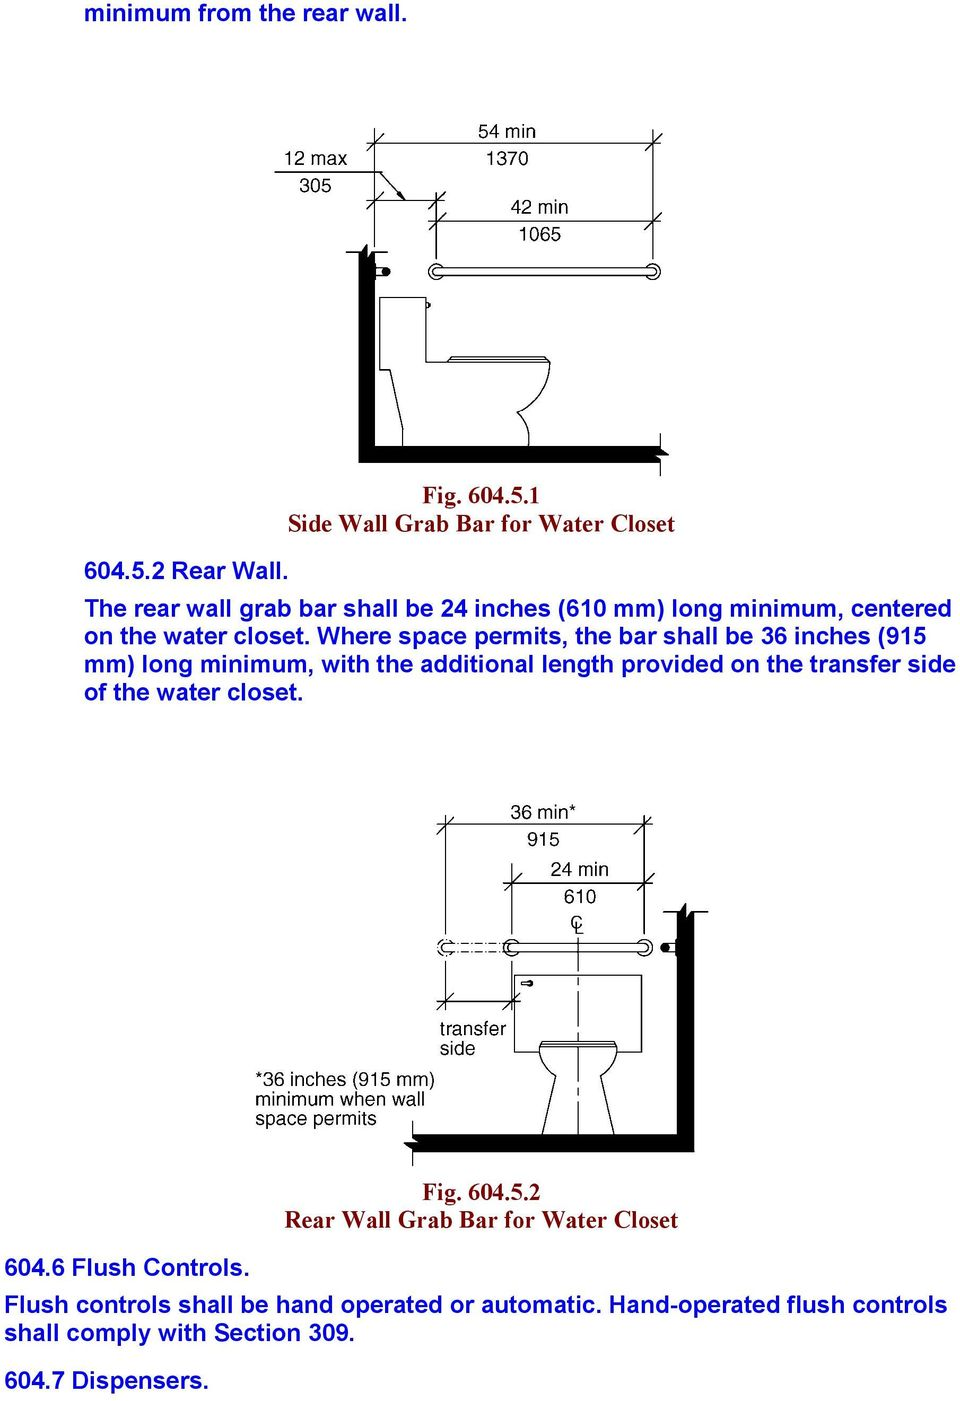 1 Side Wall Grab Bar for Water Closet The rear wall grab bar shall be 24 inches (610 mm) long minimum, centered on the water closet.